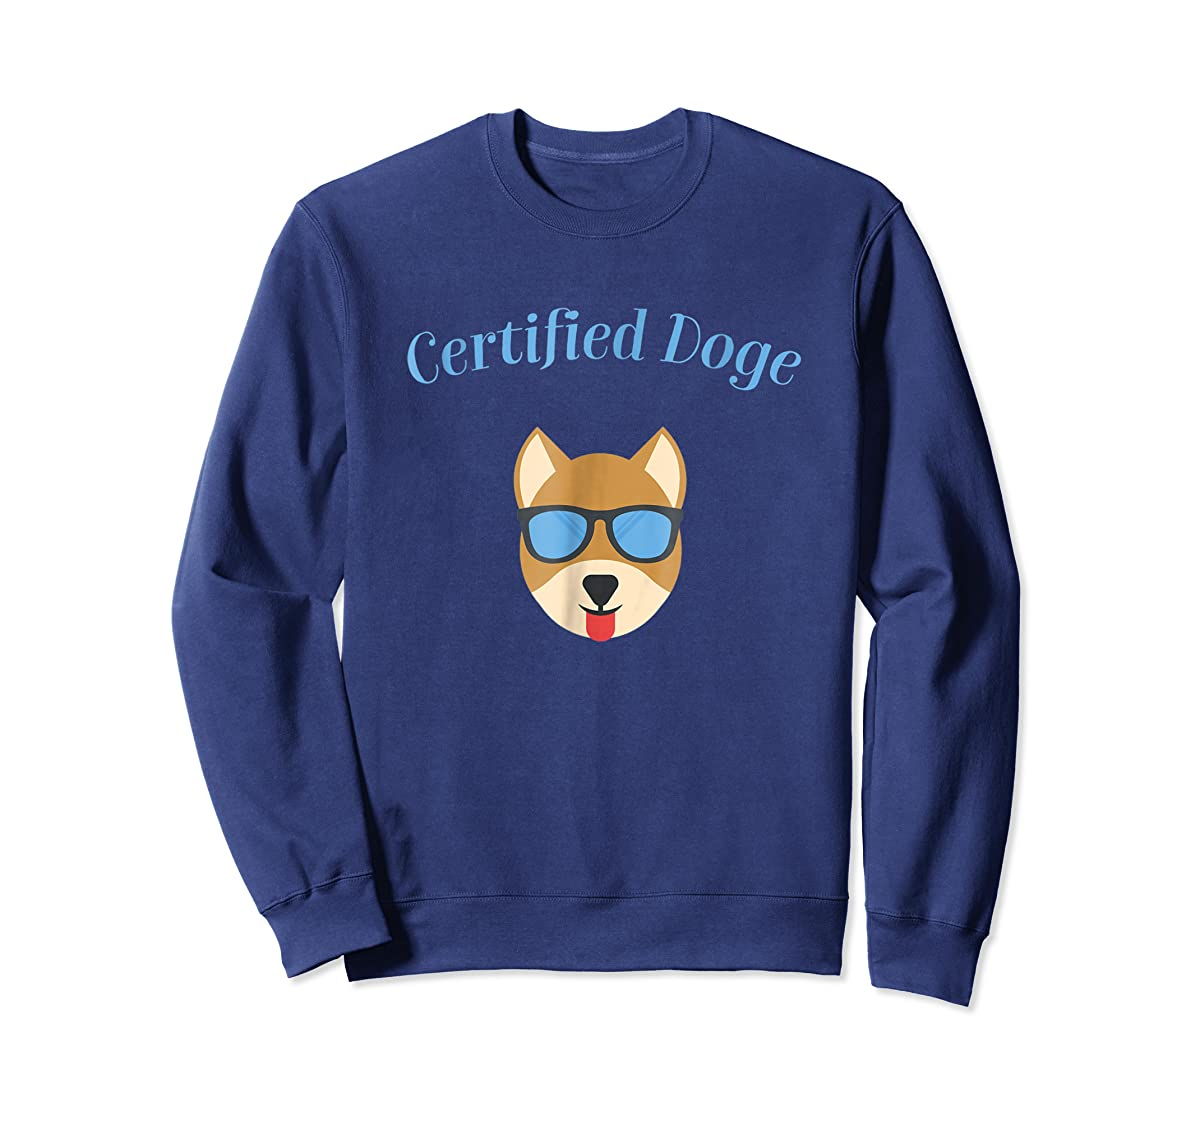 Certified Doge Tee Shirt for puppy Dog love and Fur Babies-Sweatshirt-Navy